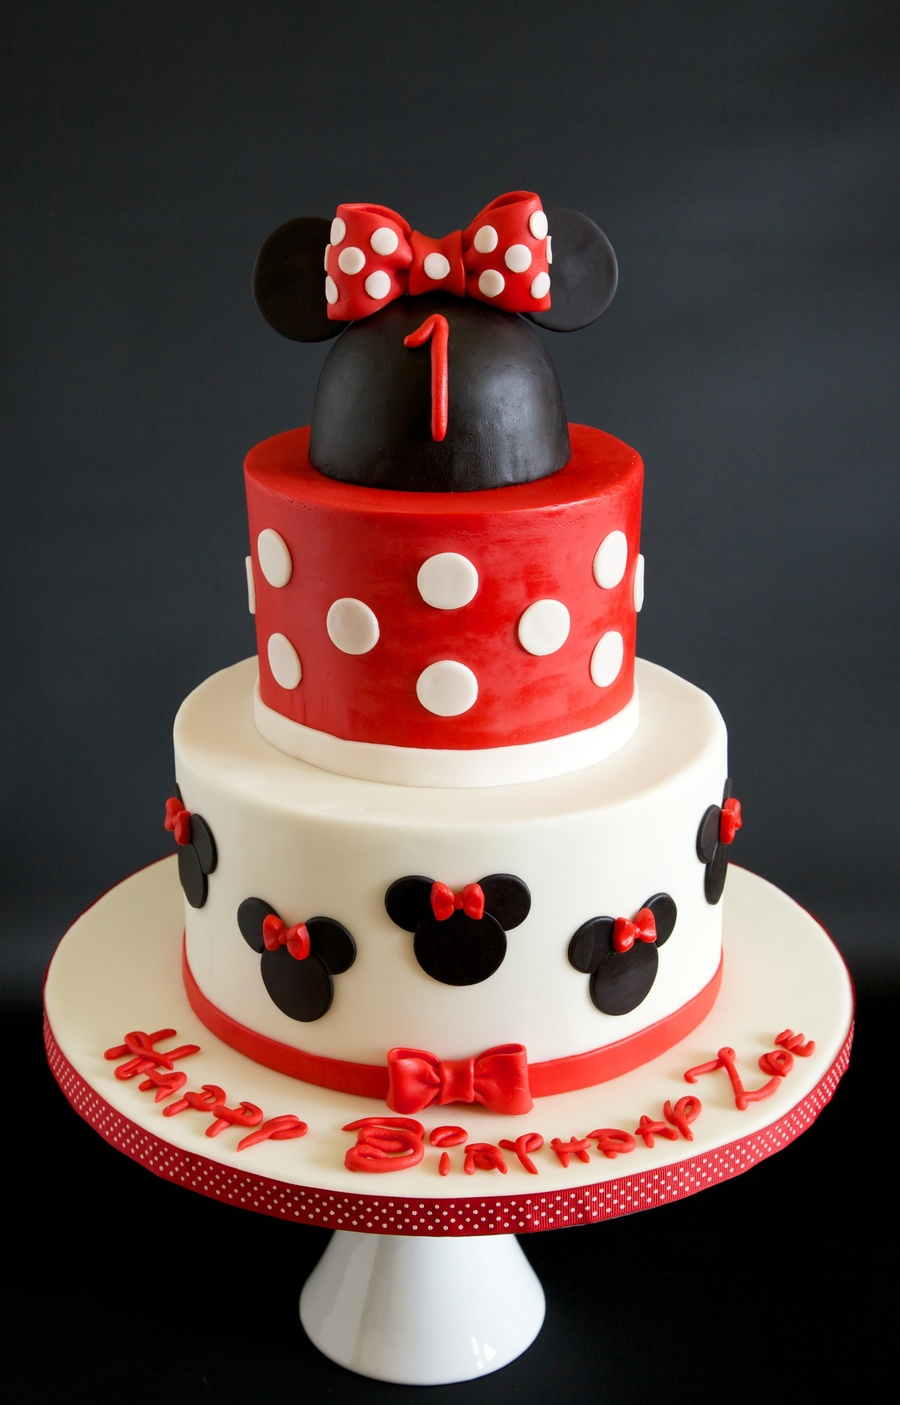 Minnie Mouse Birthday Cake With An Attempt At The Disney Font